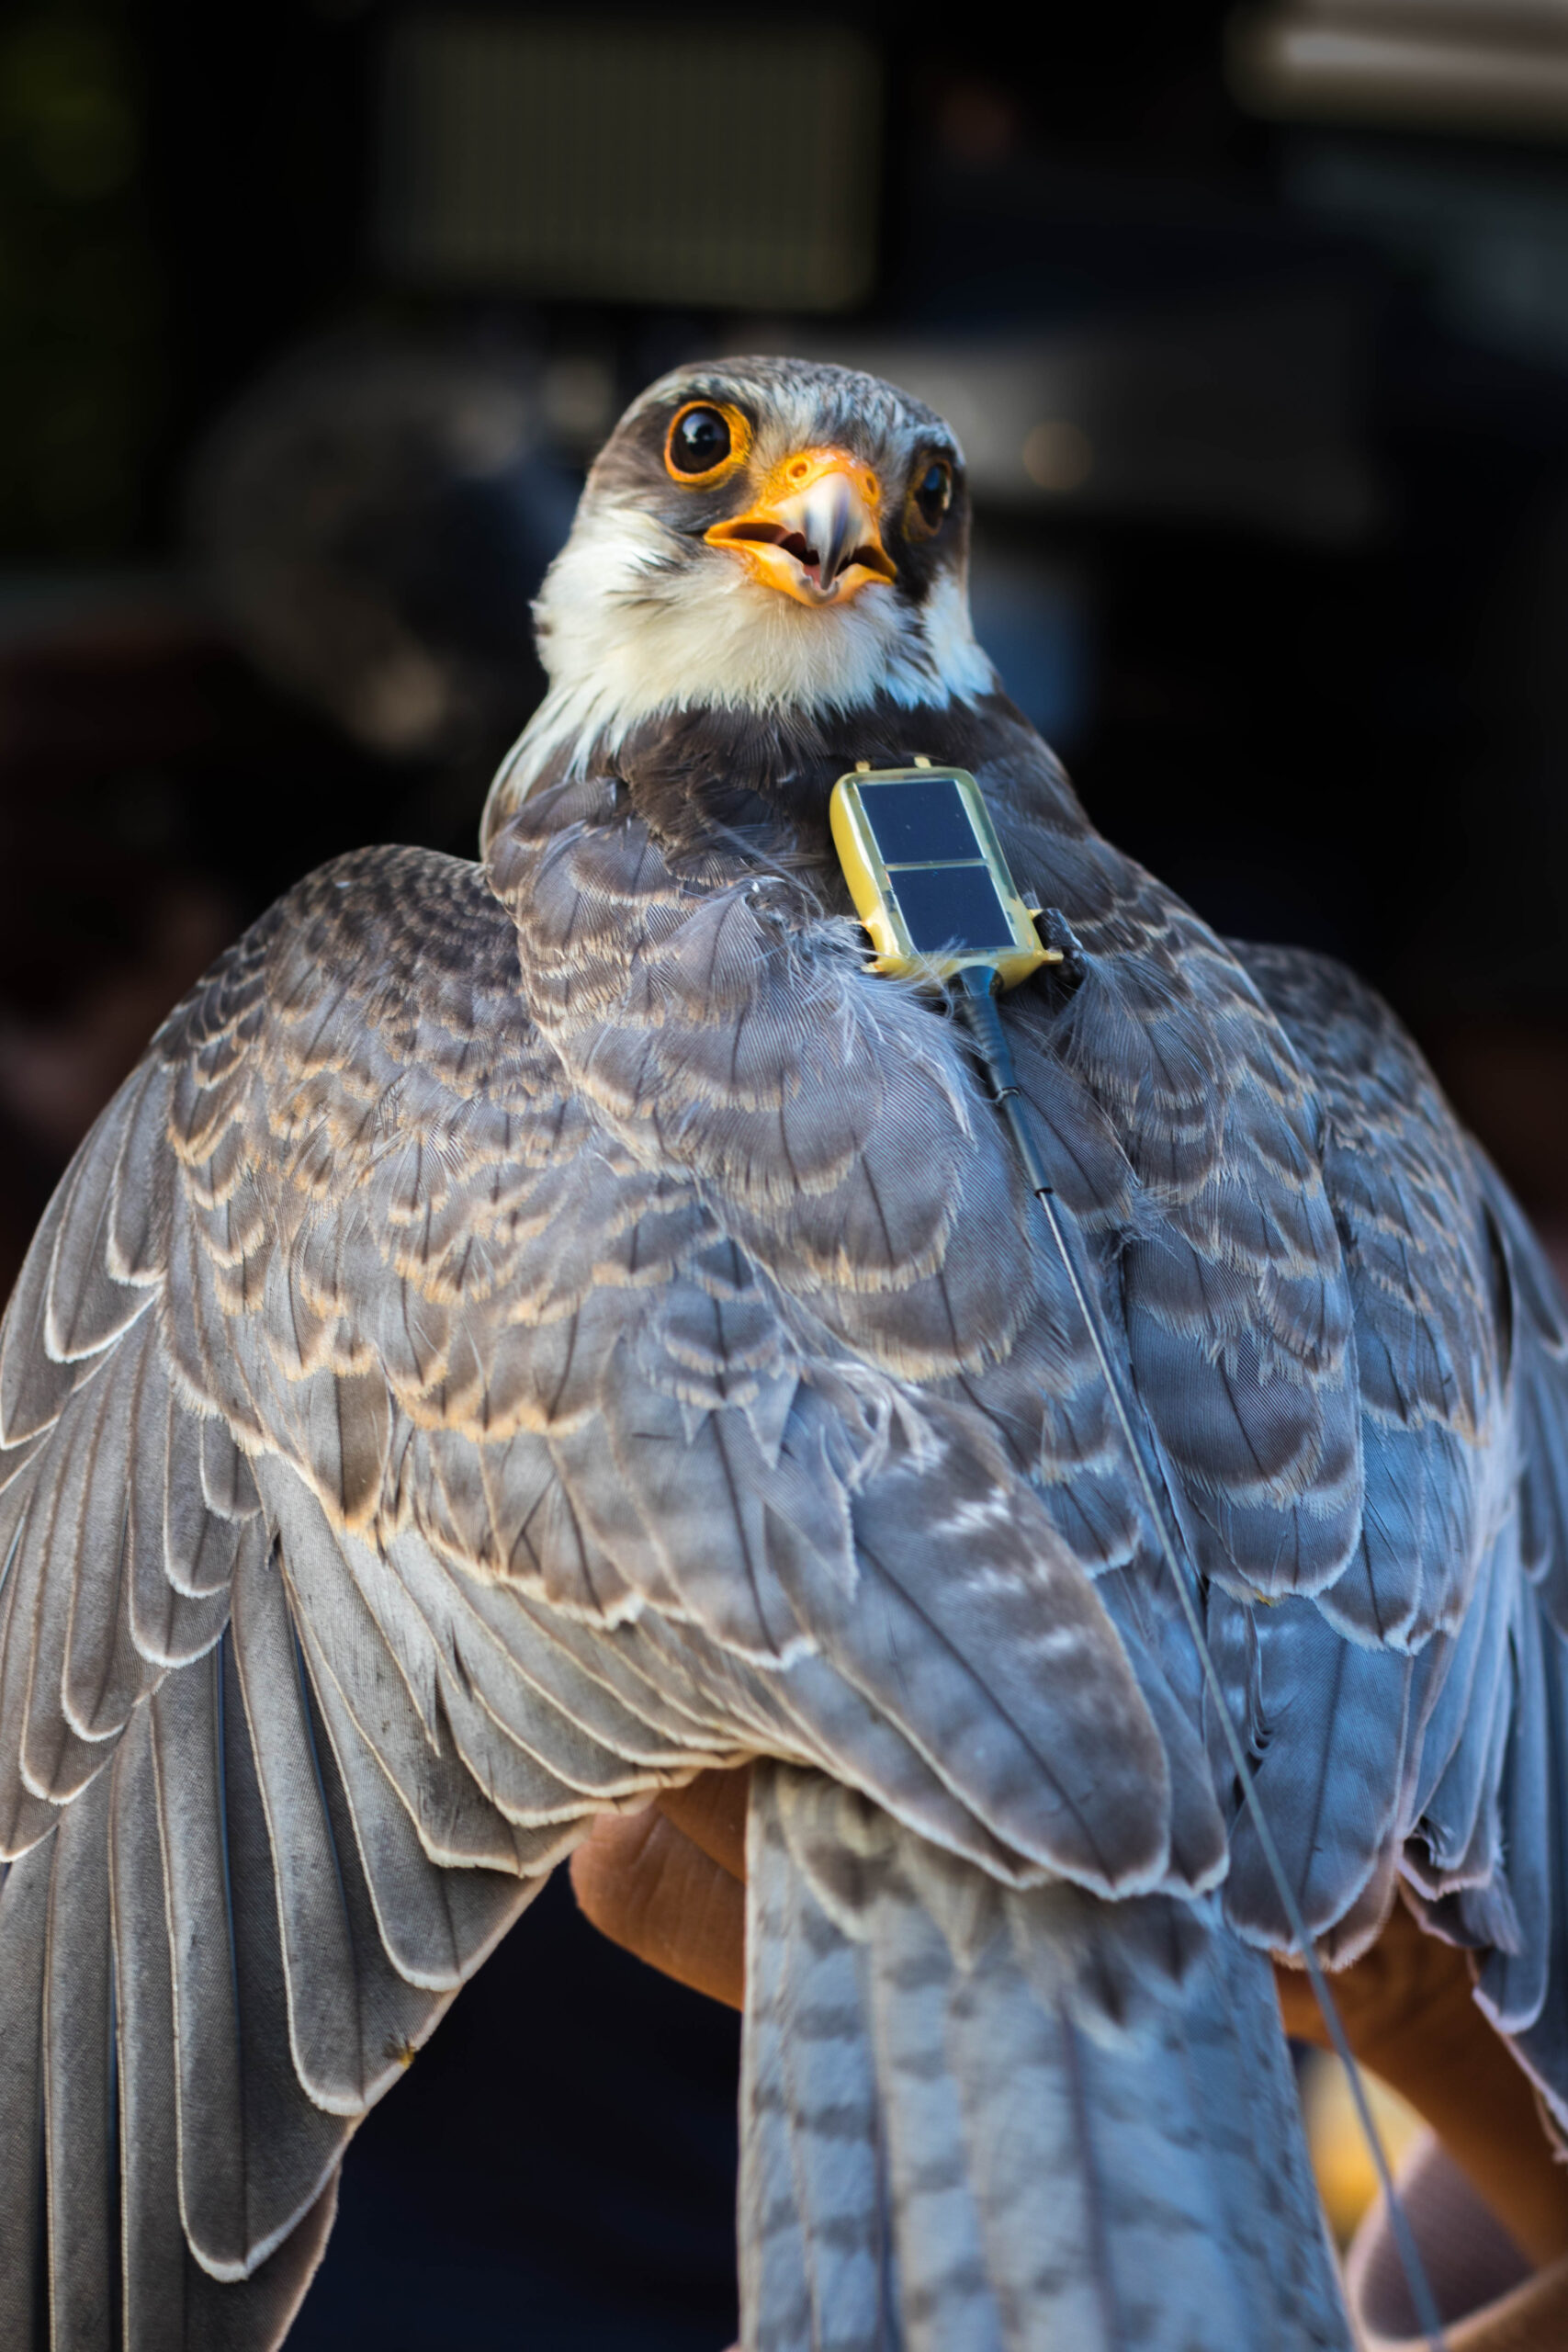 Migratory Amur Falcons Return to Roost in the Naga Hills